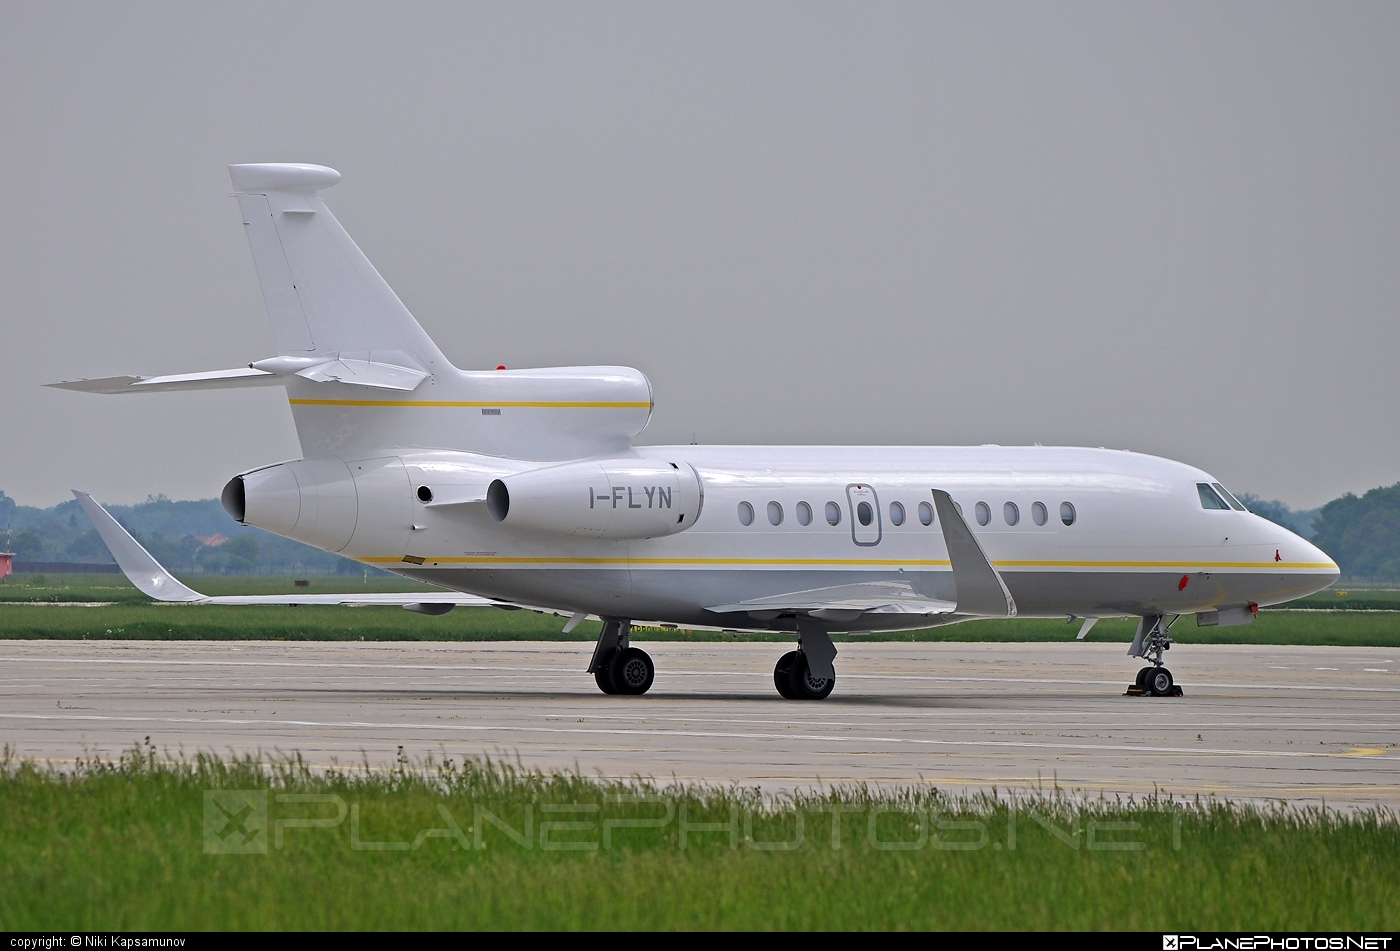 Dassault Falcon 900EX - I-FLYN operated by Private operator #dassault